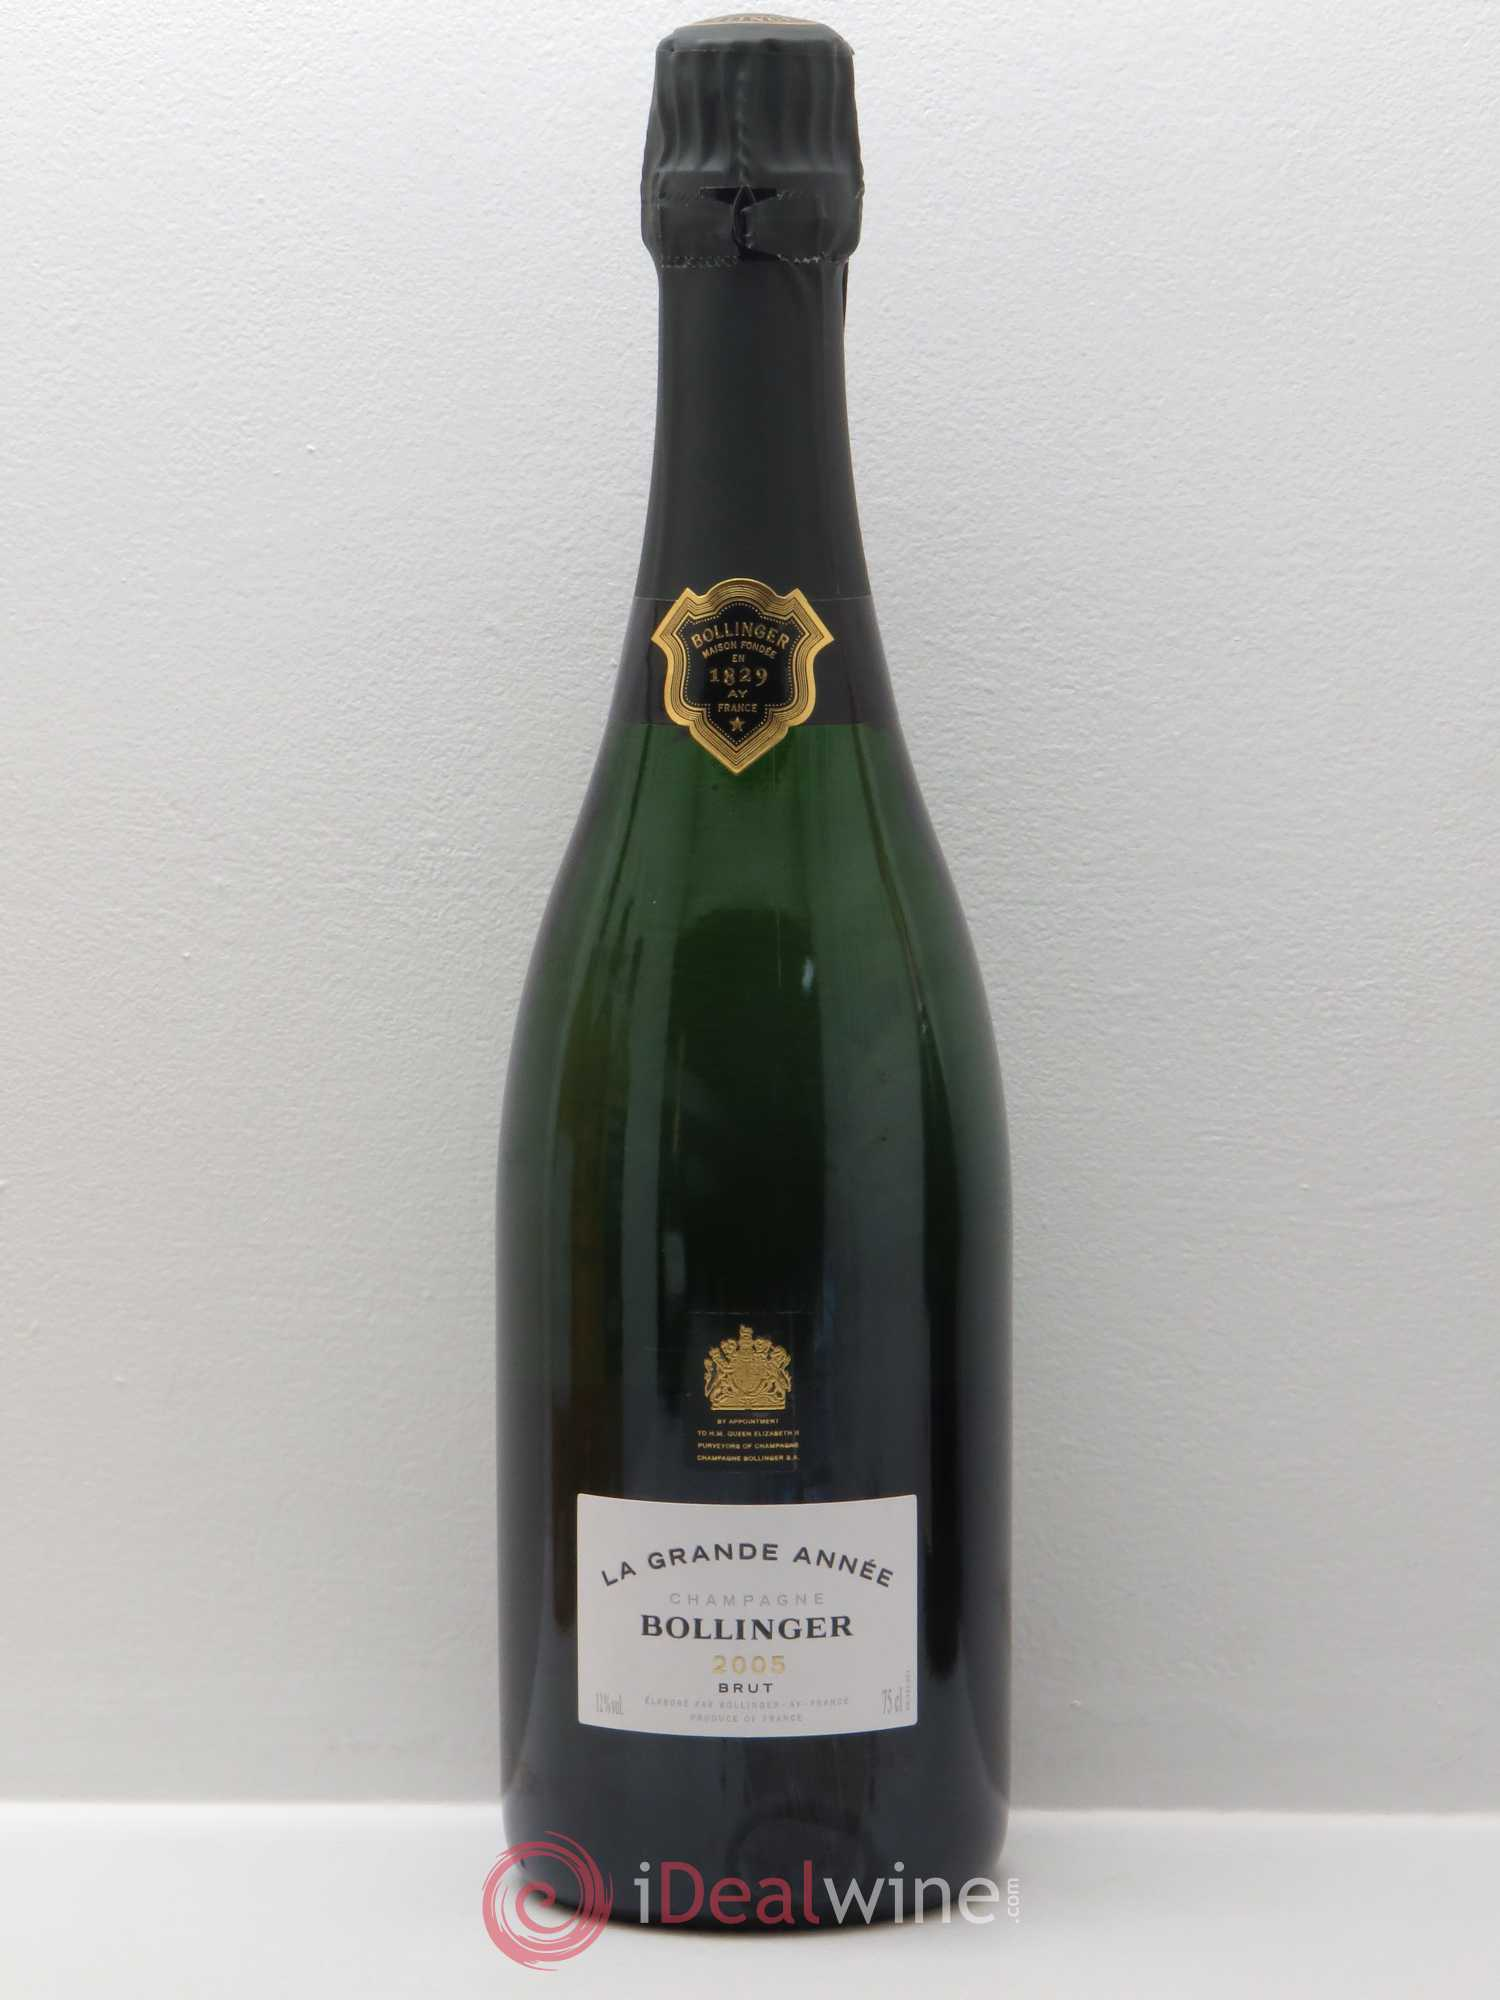 Grande Année Bollinger  2005 - Lot of 1 Bottle